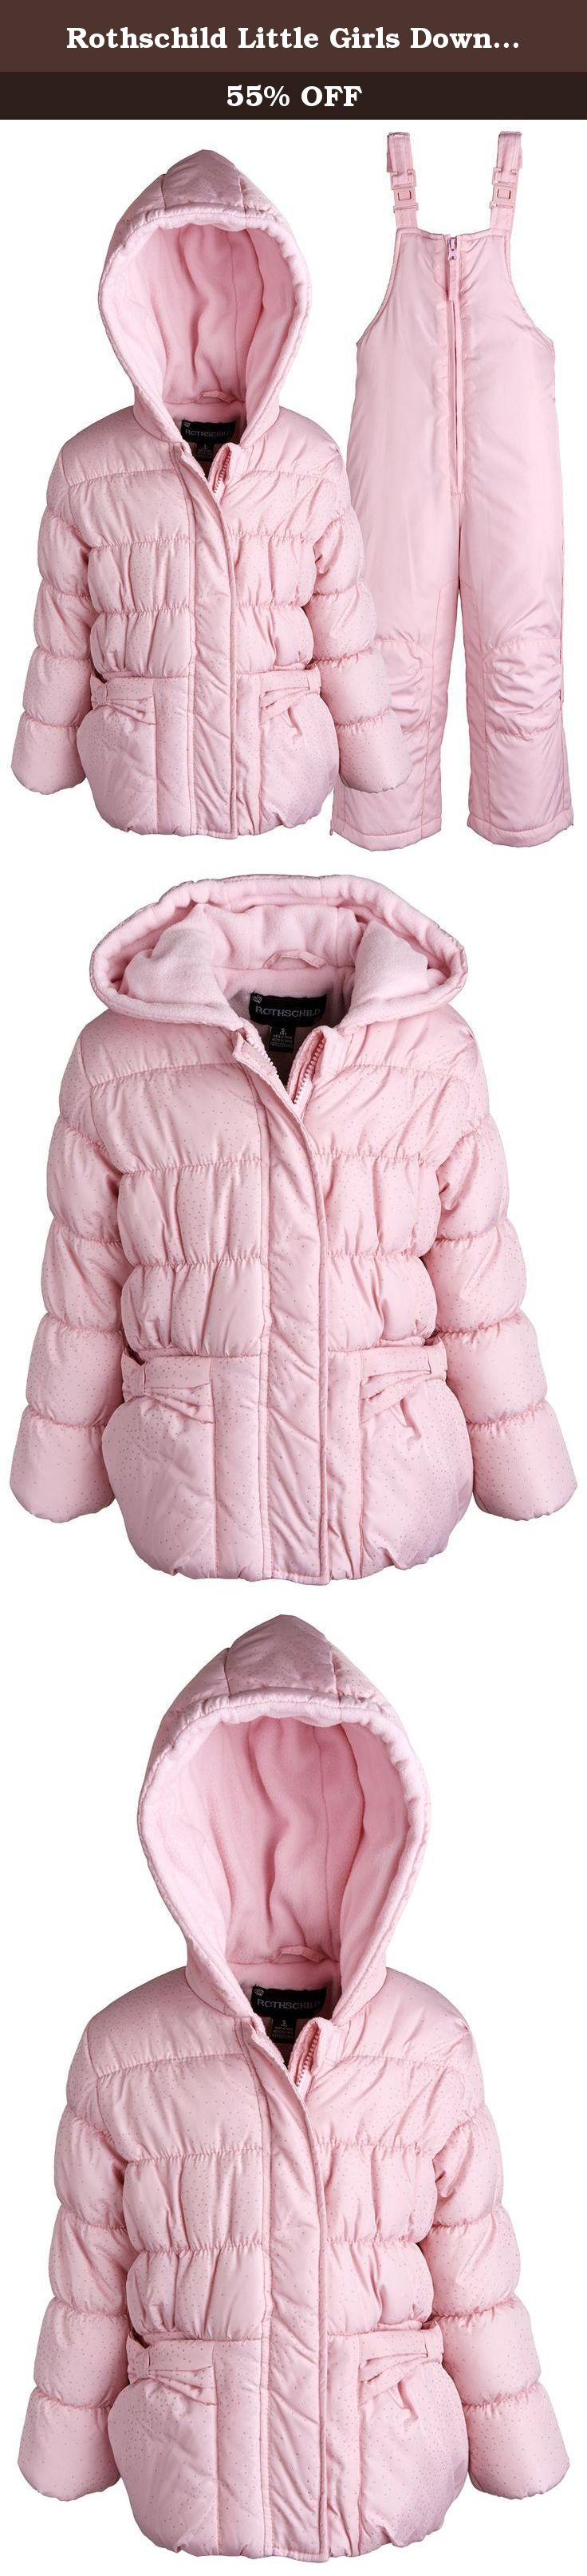 c9e477b296a4 Rothschild Little Girls Down Alternative Bubble Snowsuit Ski Bib and ...